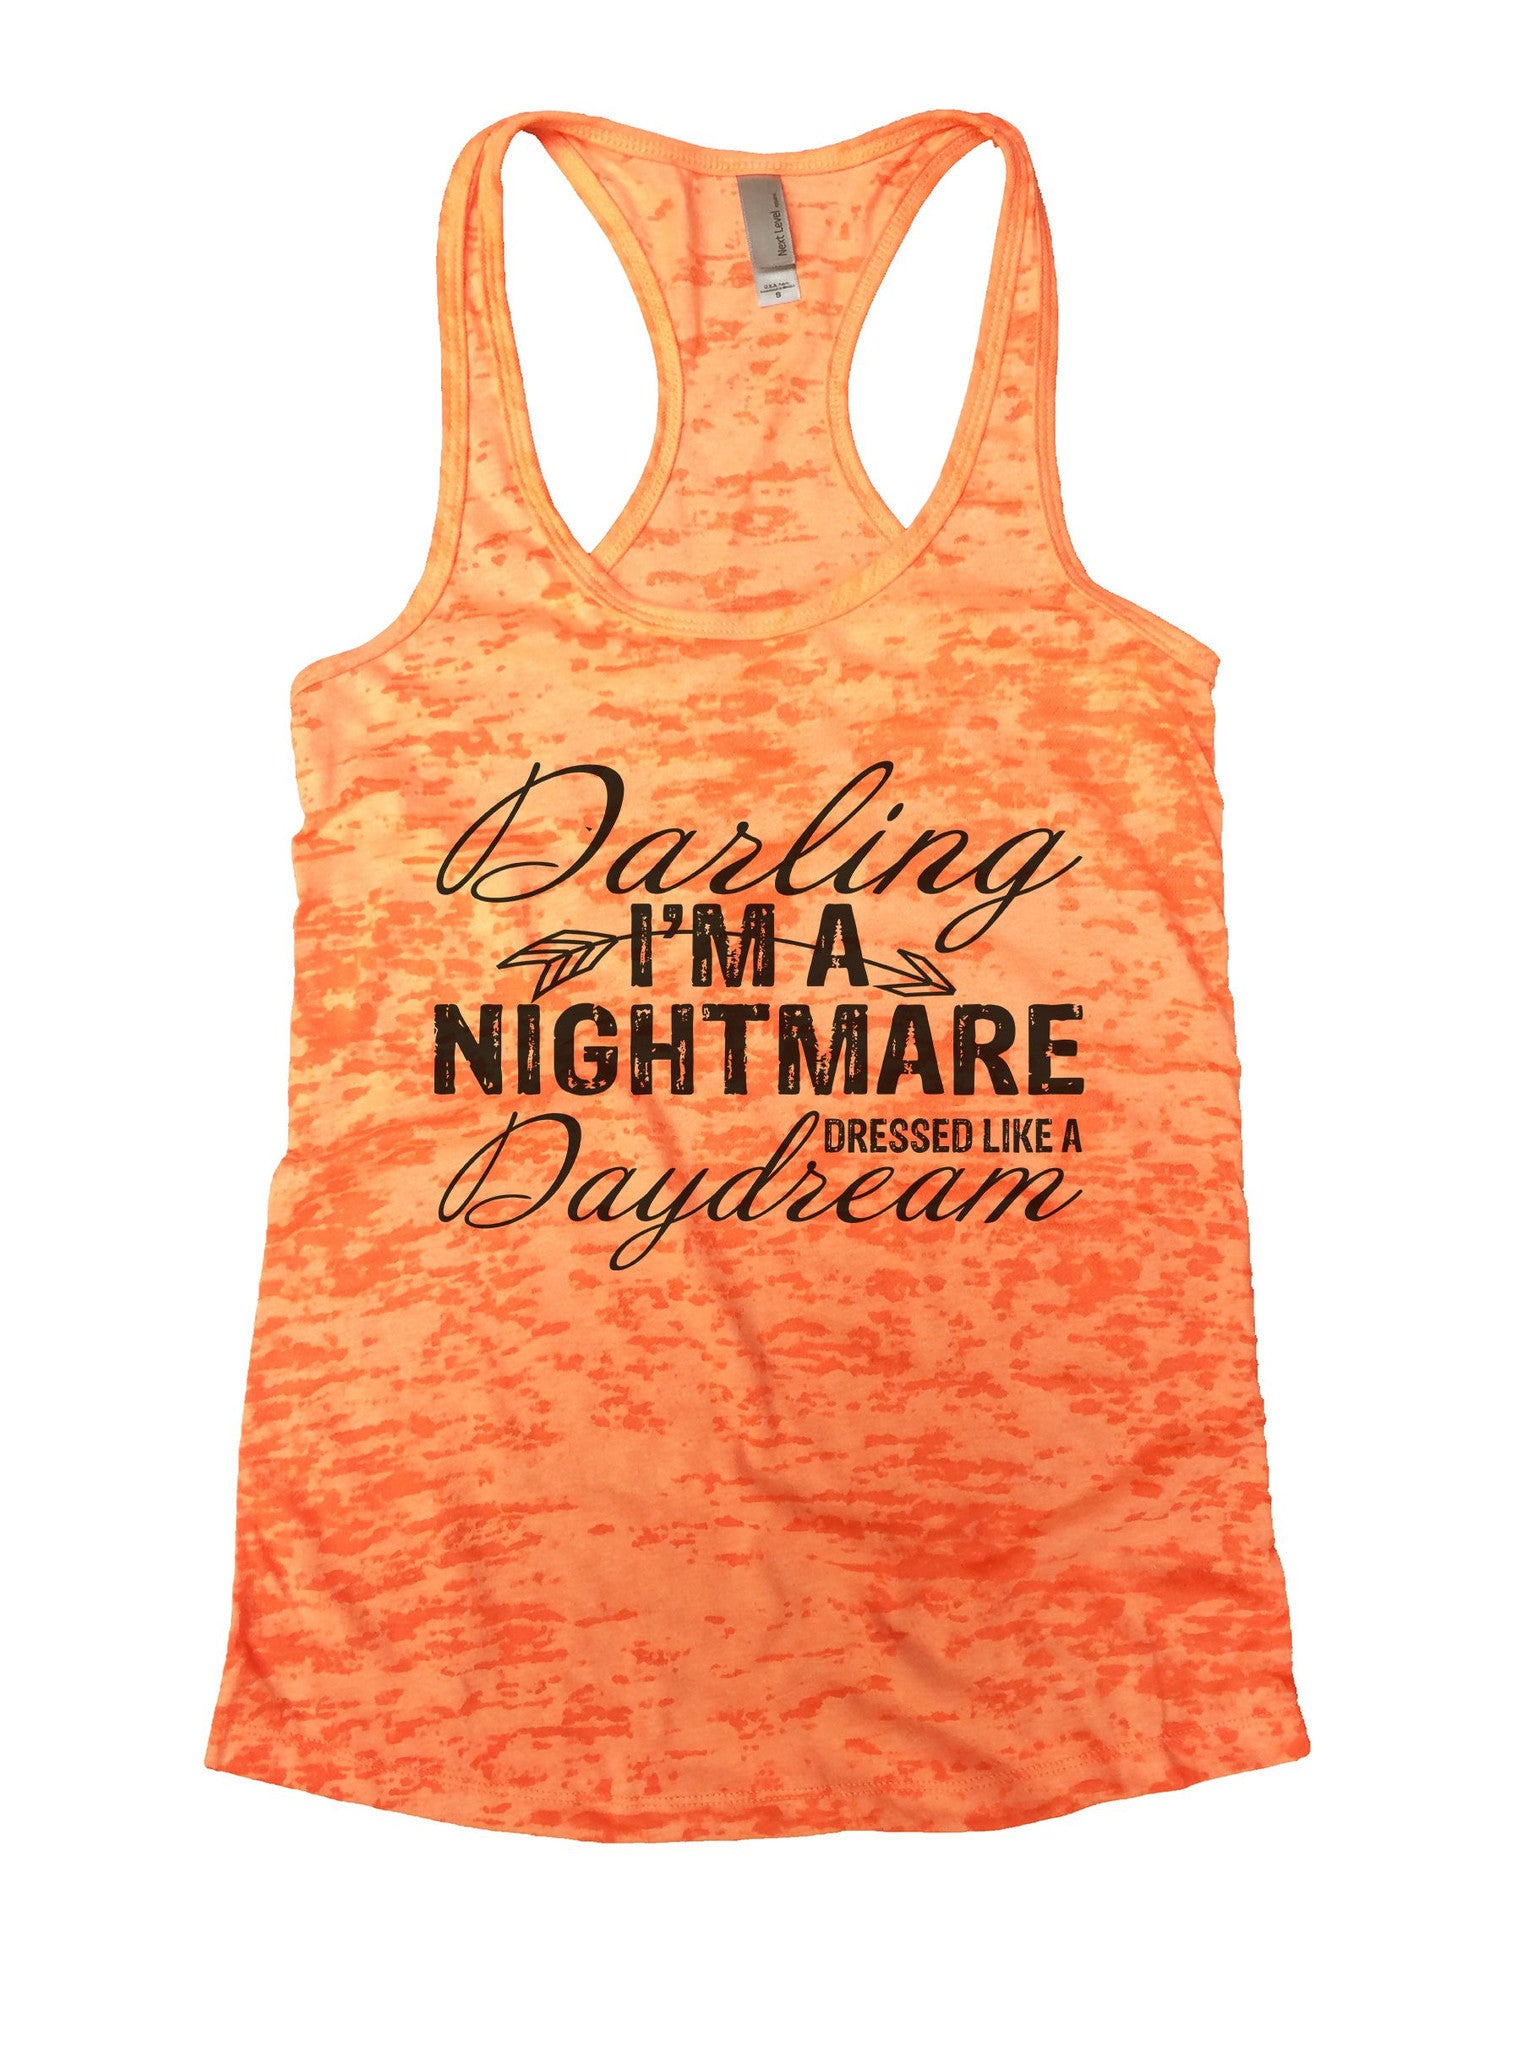 Darling I'm A Nightmare Dressed Like A Daydream Burnout Tank Top By BurnoutTankTops.com - 930 - Funny Shirts Tank Tops Burnouts and Triblends  - 3